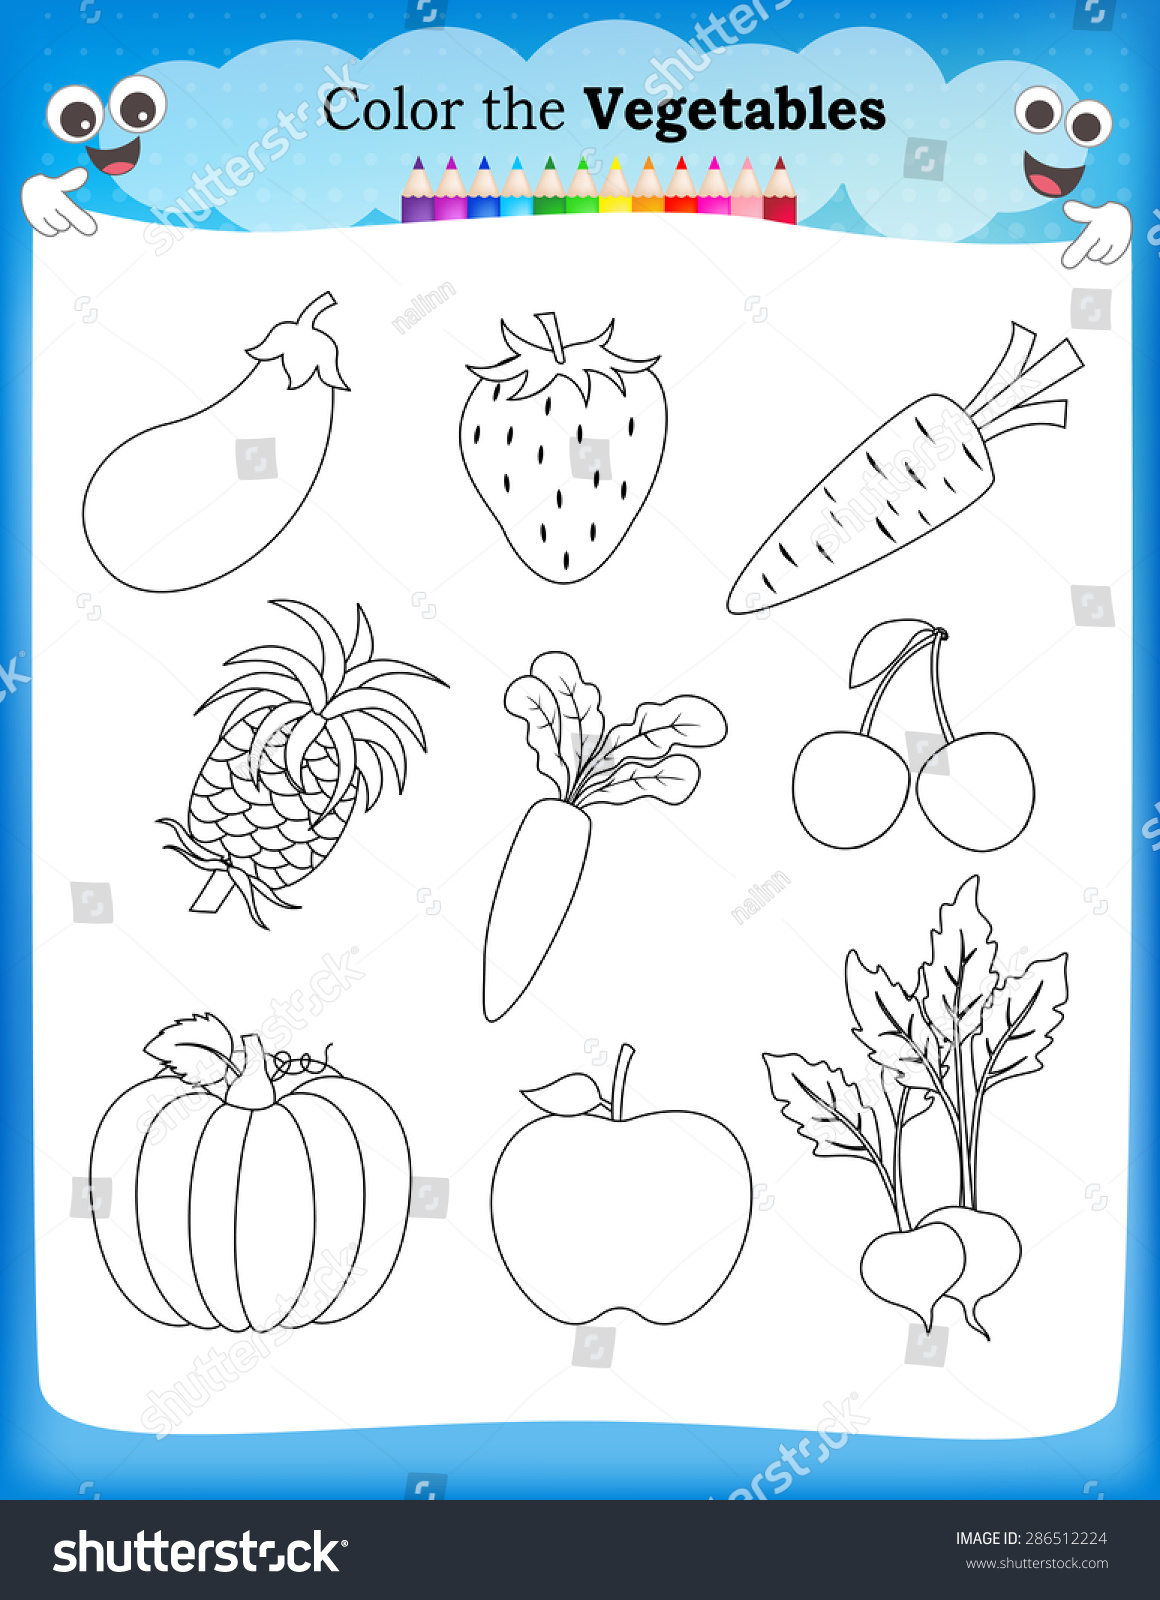 Worksheets On Fruits And Vegetables For Kindergarten